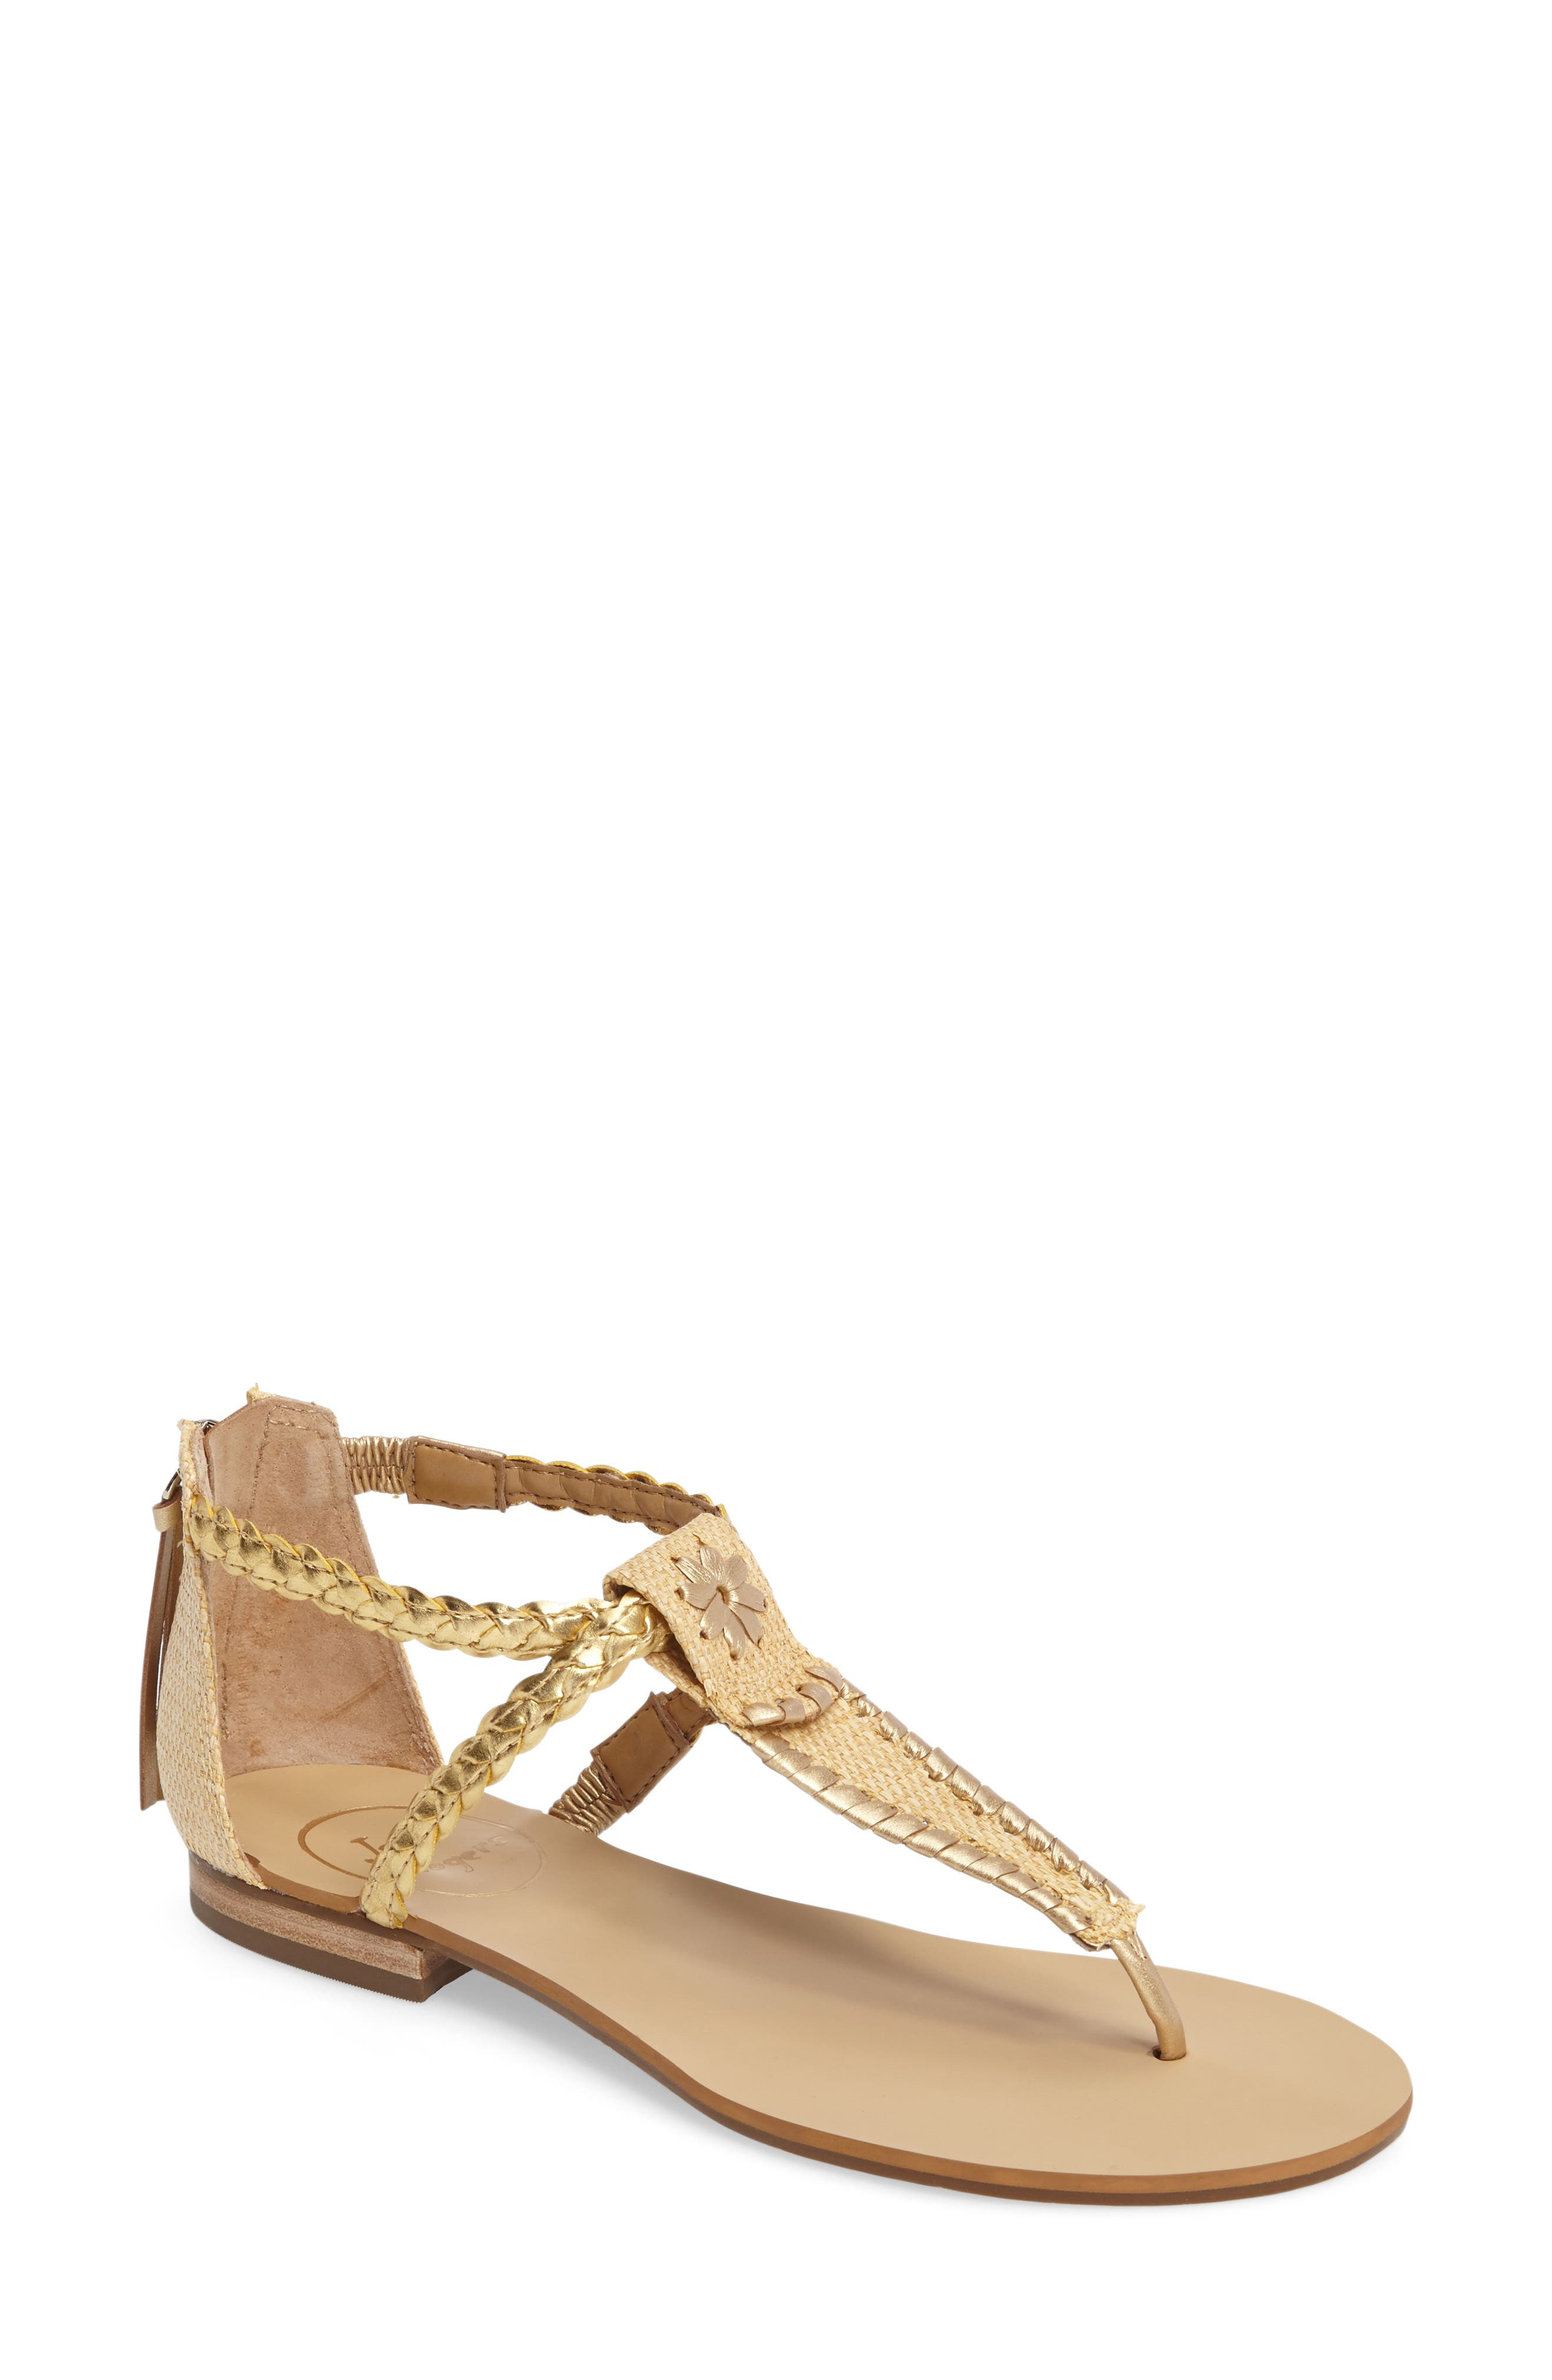 Jenna Sandal,                             Main thumbnail 1, color,                             Natural/ Gold Fabric